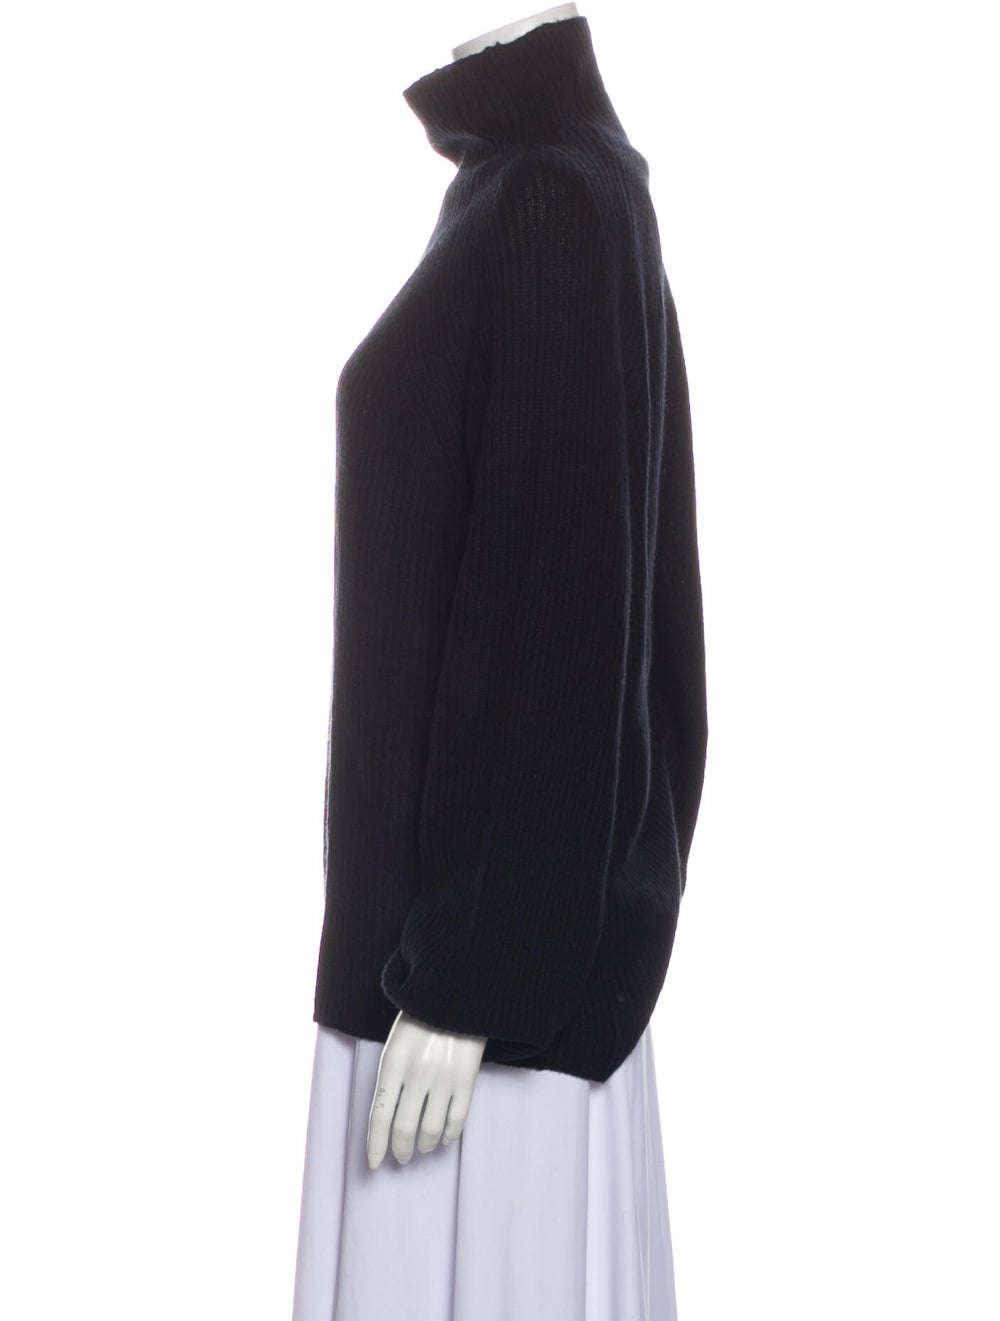 Naked Cashmere Cashmere Turtleneck Sweater Black - image 2